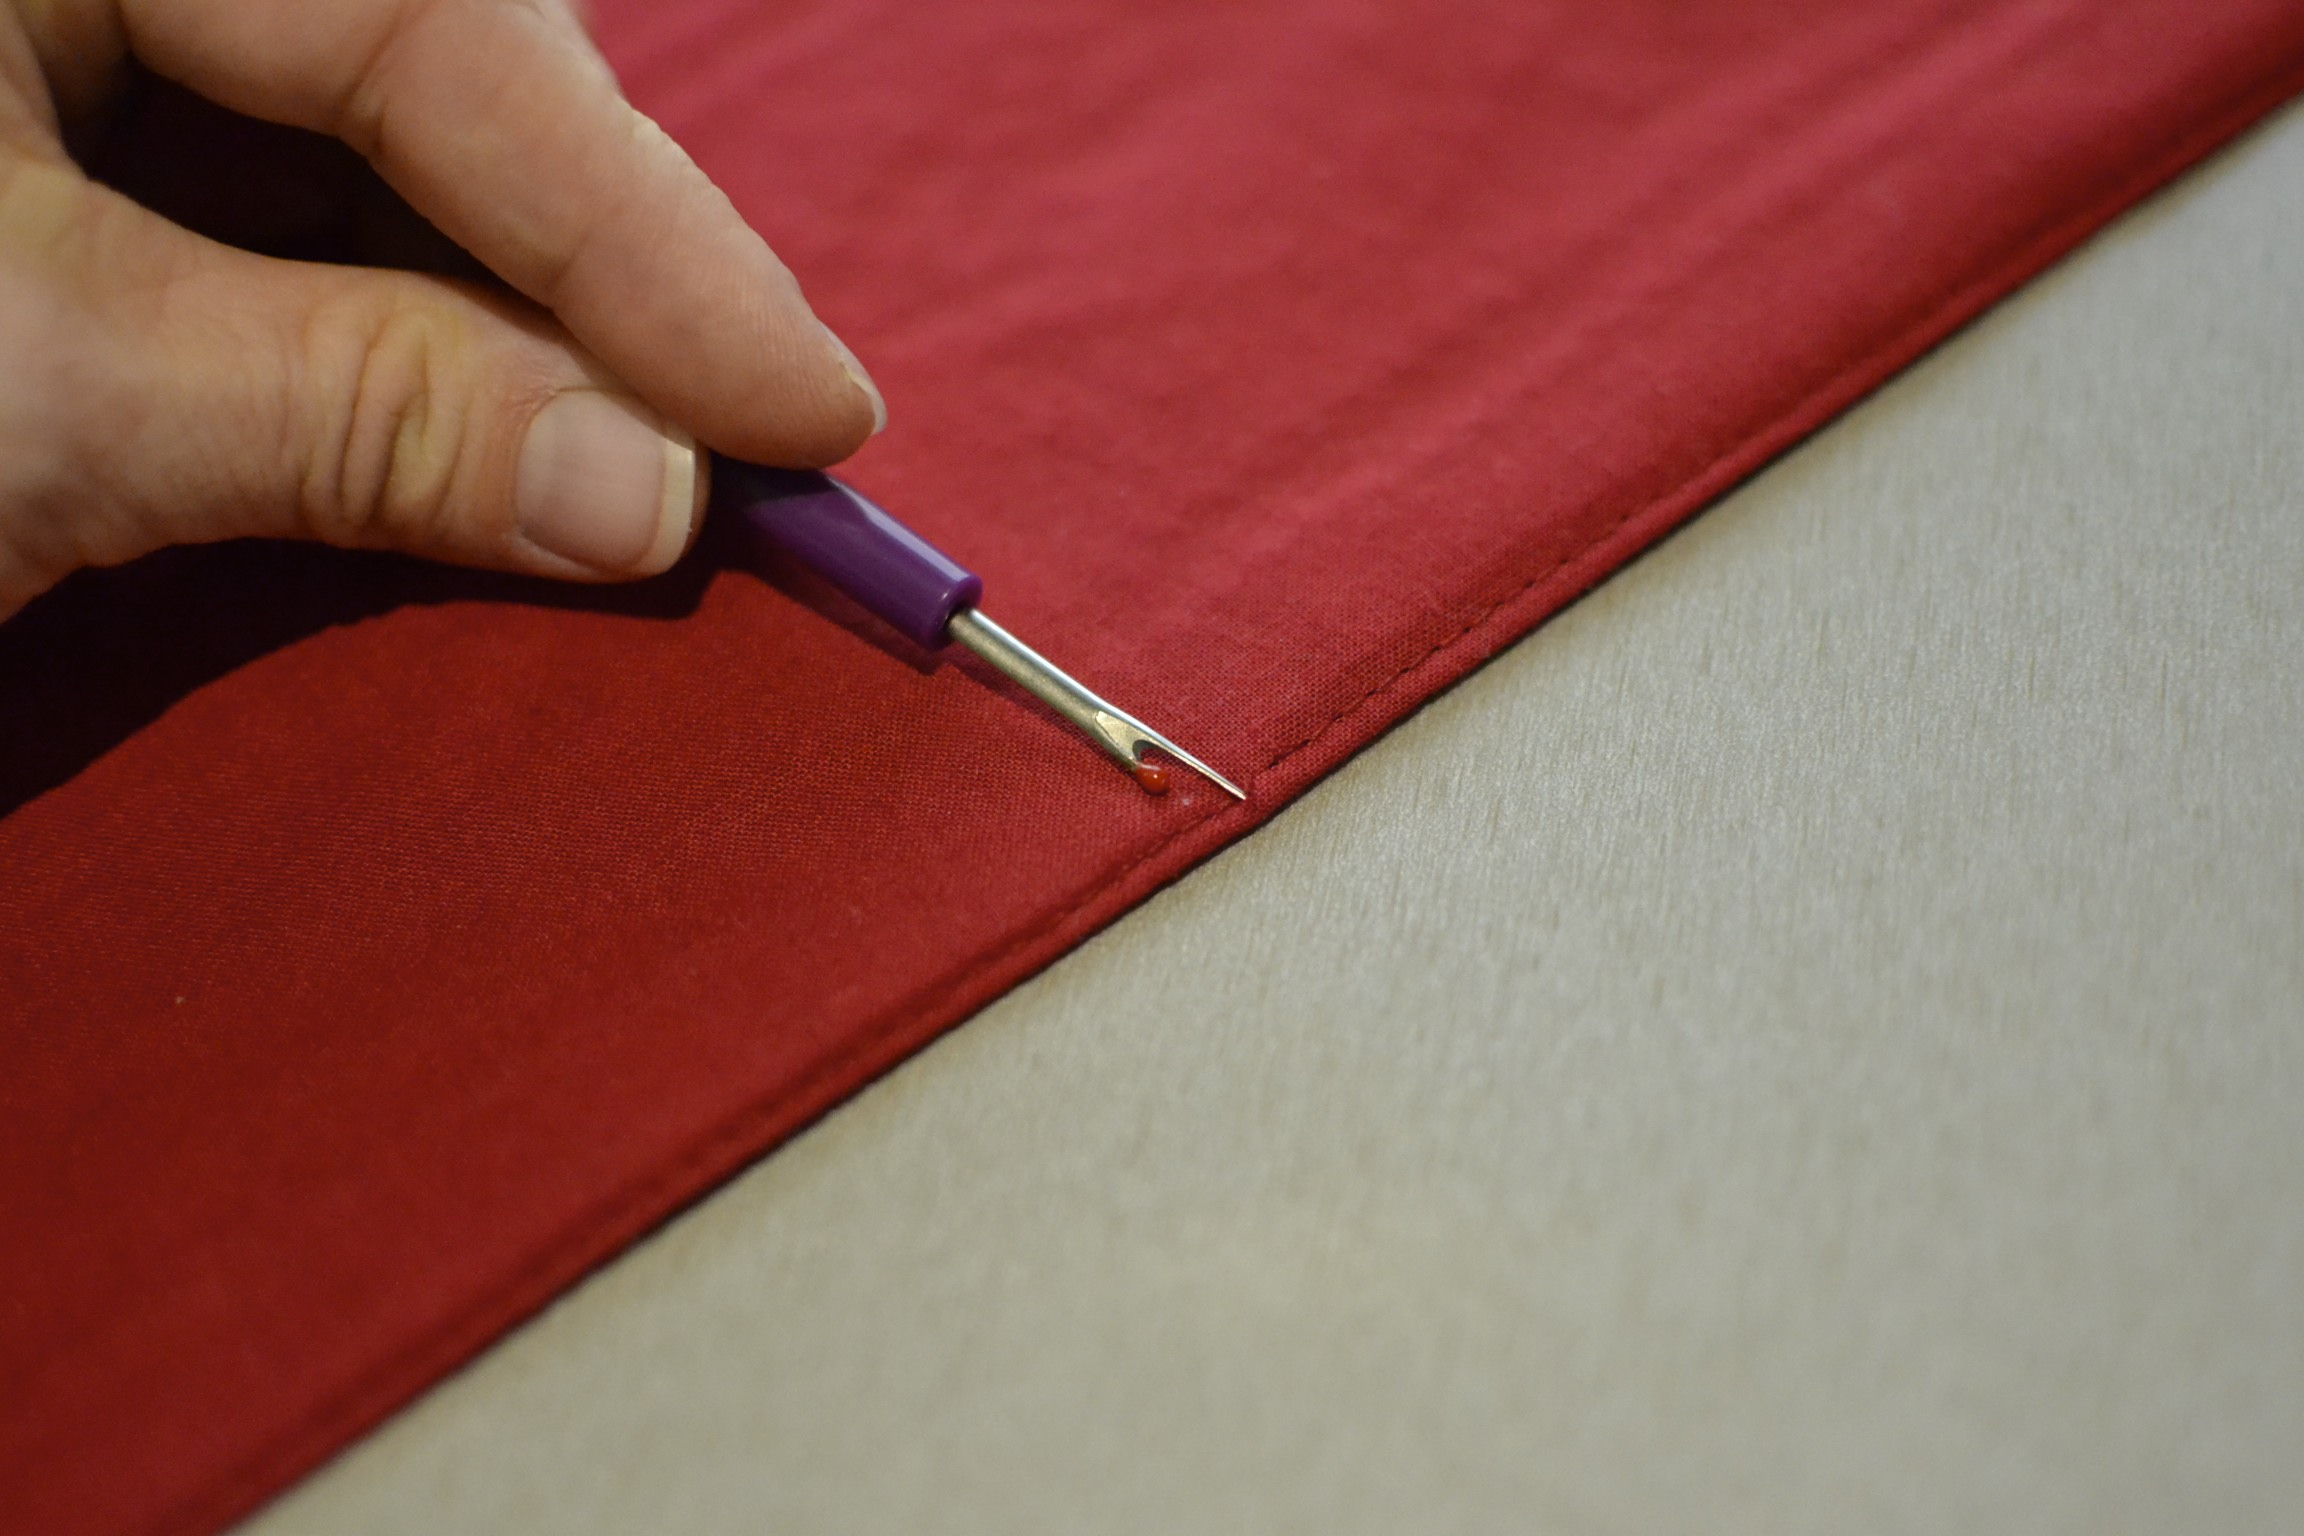 """begin in the middle, on the back side of the placemat, by gently pulling at the thread with your seem ripper. cut through the thread and carefully unthread the existing stitching about 3"""" to each side of where you started. it helps to have about a 6"""" opening to add the stuffing. be careful not to break the thread...you need for it to be long enough to tie off once you have opened up the seem."""